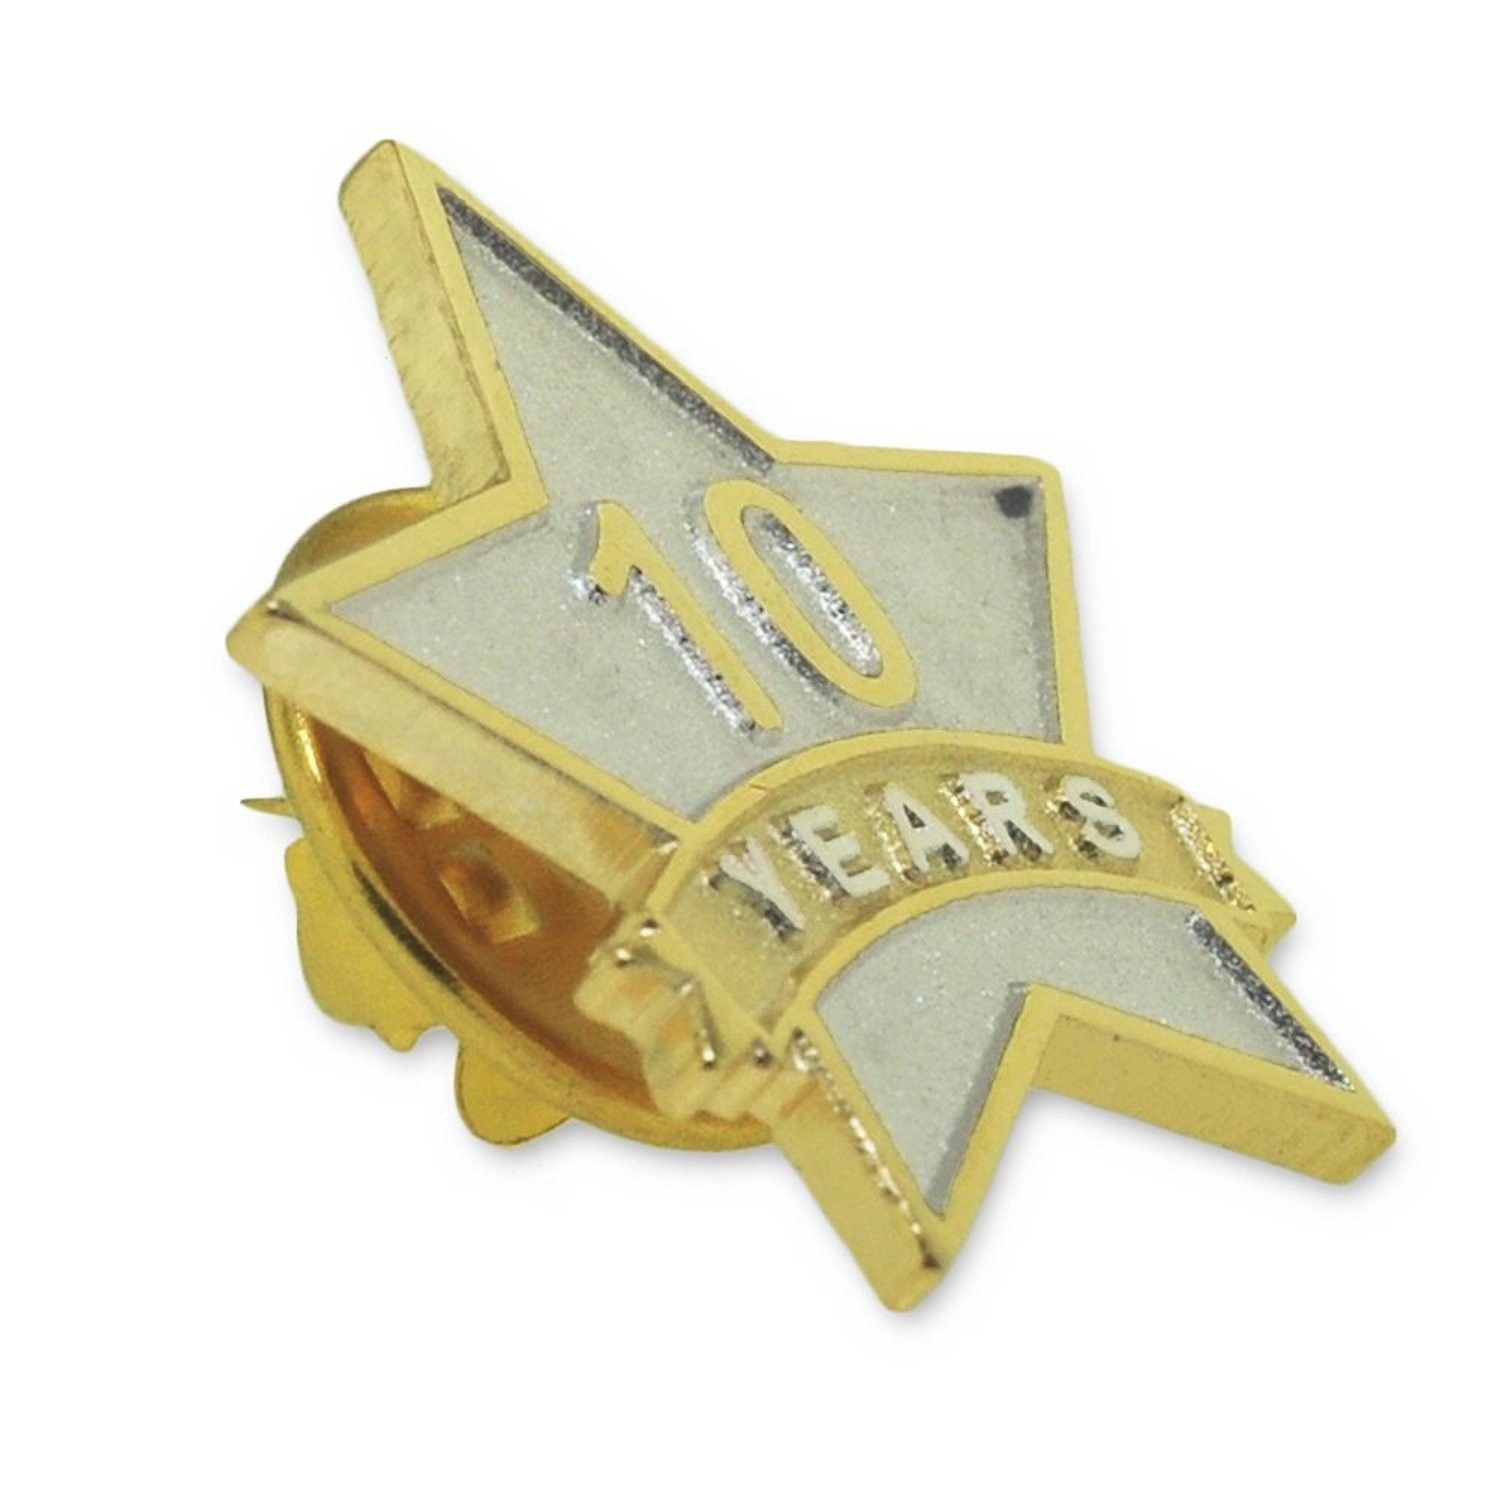 Pinmart S 10 Year Service Award Star Corporate Recognition Dual Plated Lapel Pin Cy11nkc2f2d Lapel Pins Service Awards Celine Luggage Bag